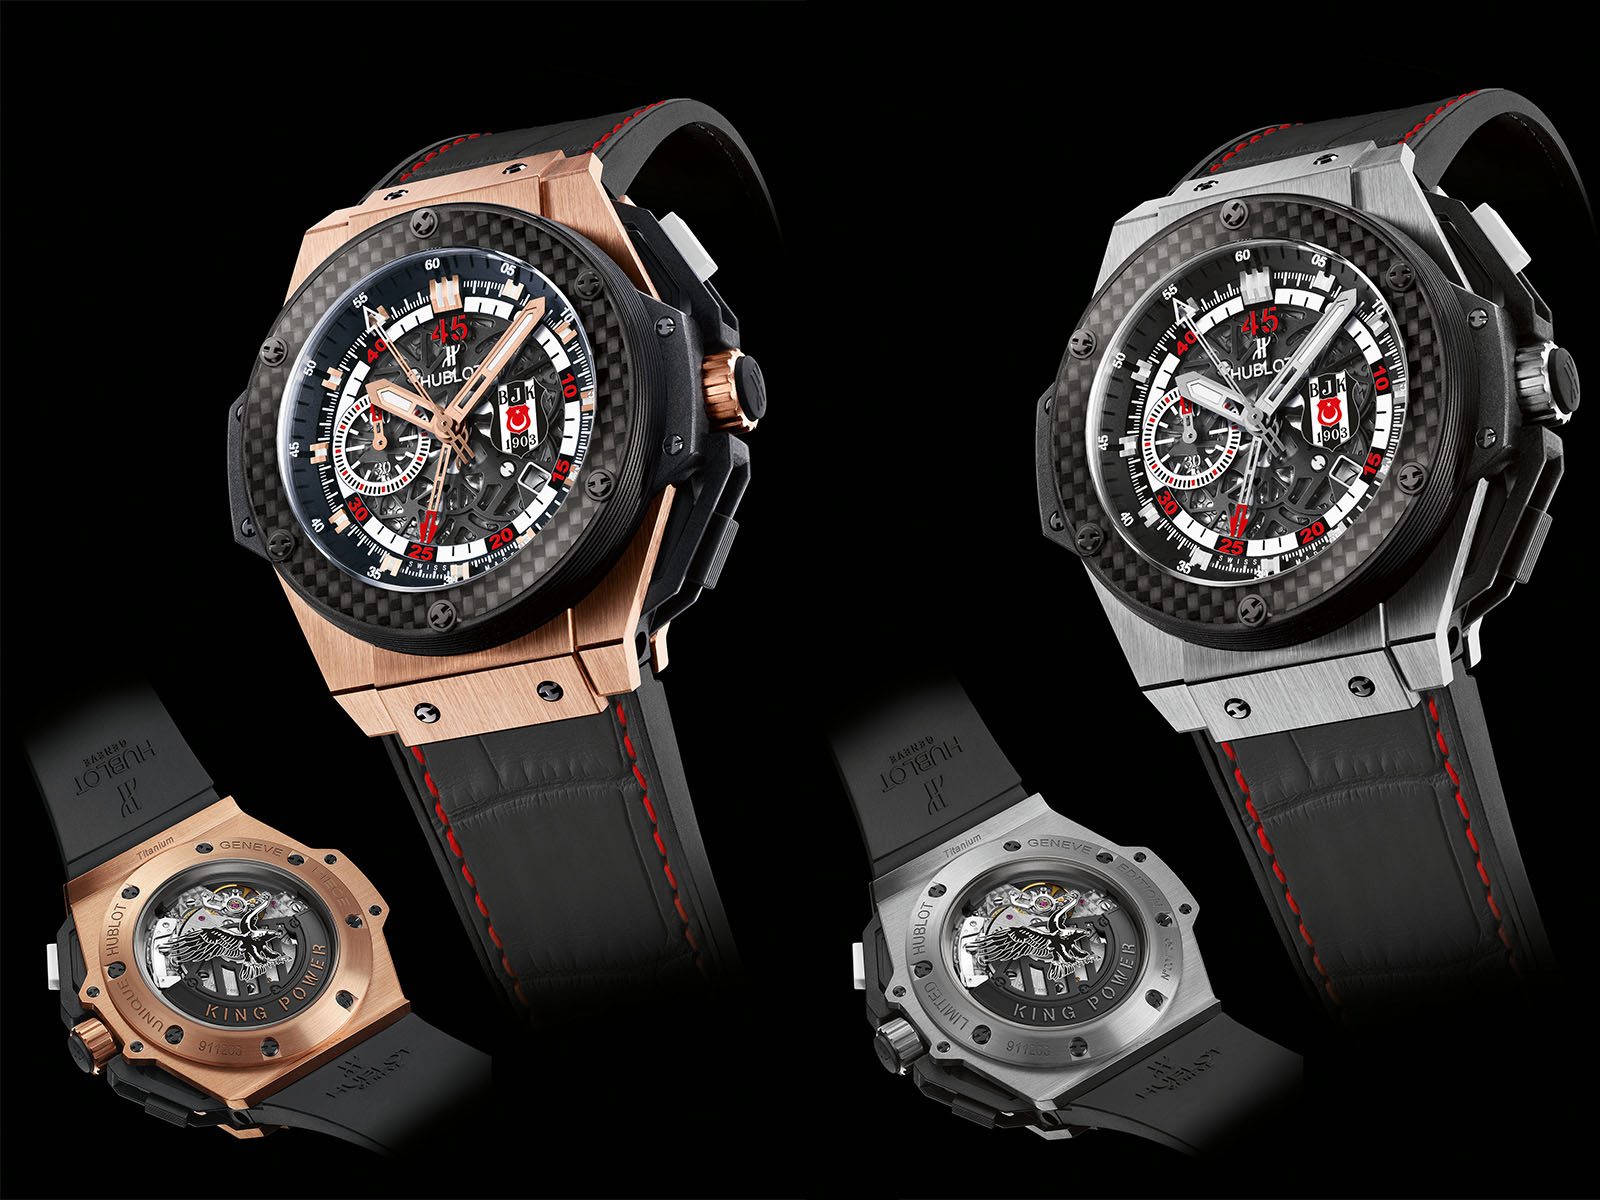 hublot-king-power-bjk-limited-edition-1.jpg